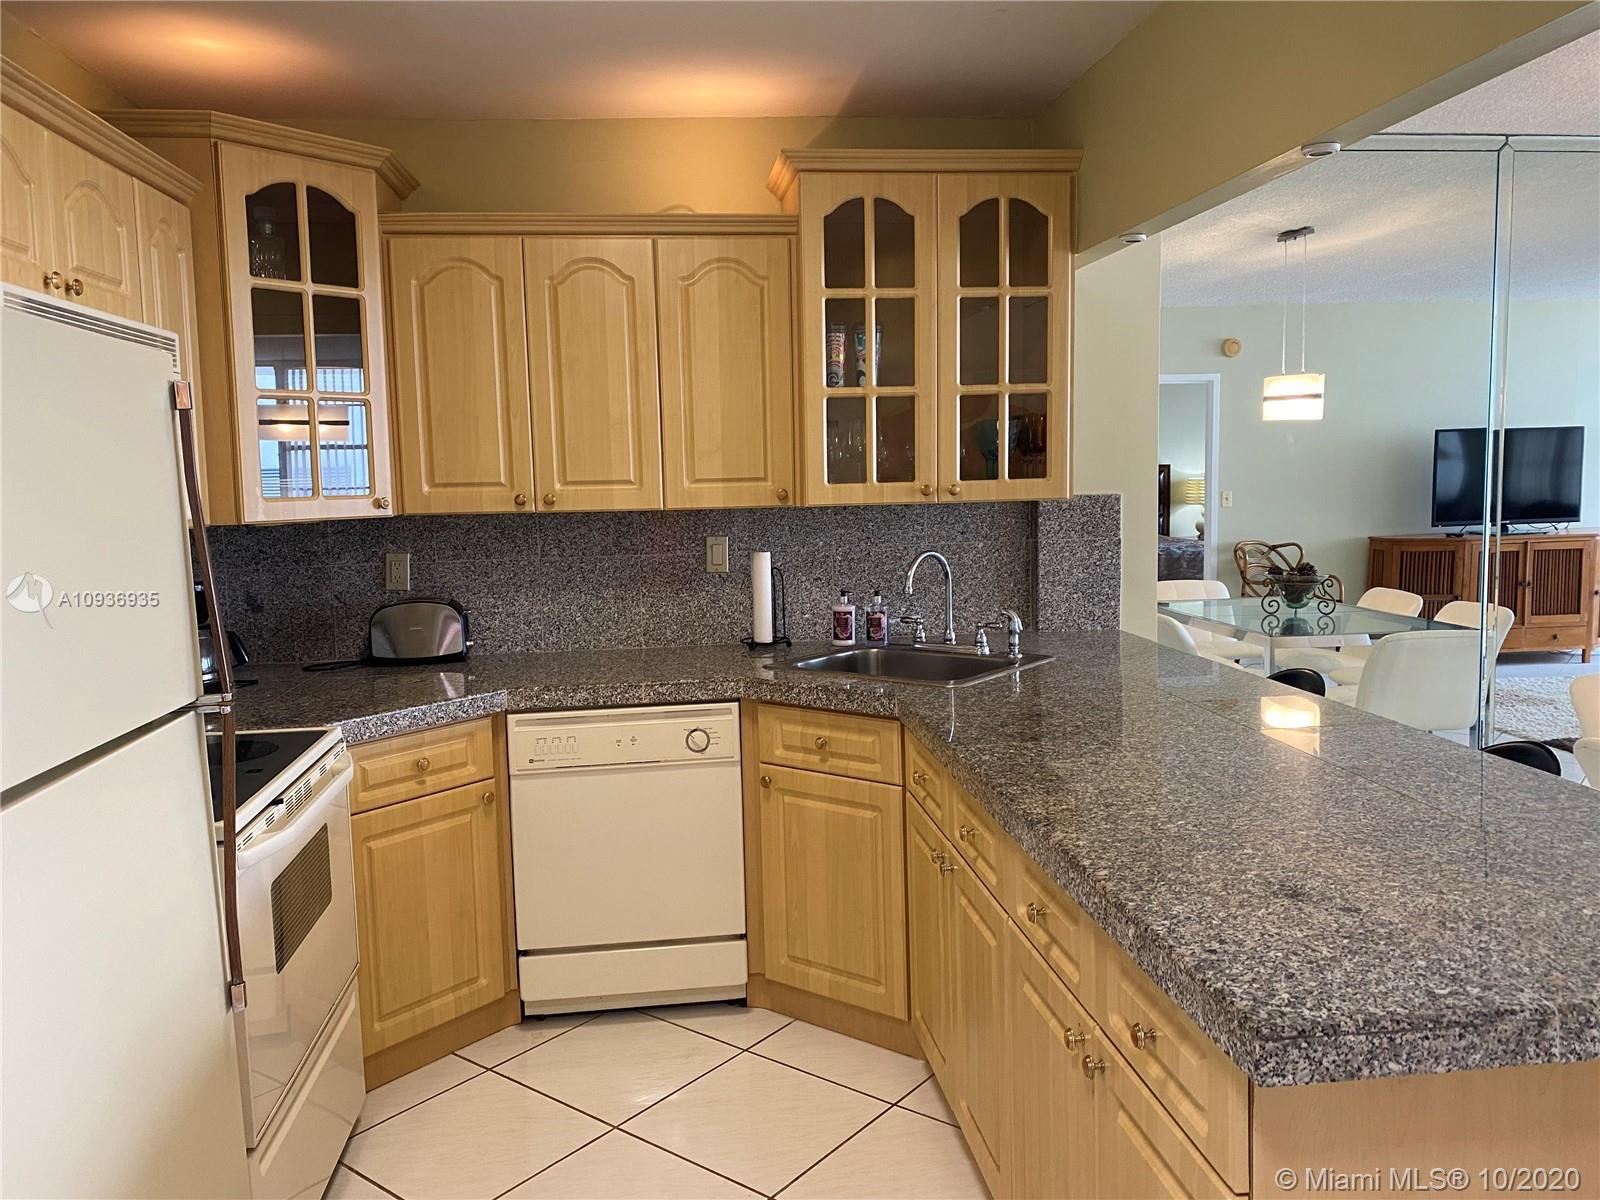 Oceanfront 1 bedroom with 2 full baths stunning apartment, completely renovated, large open floor pl